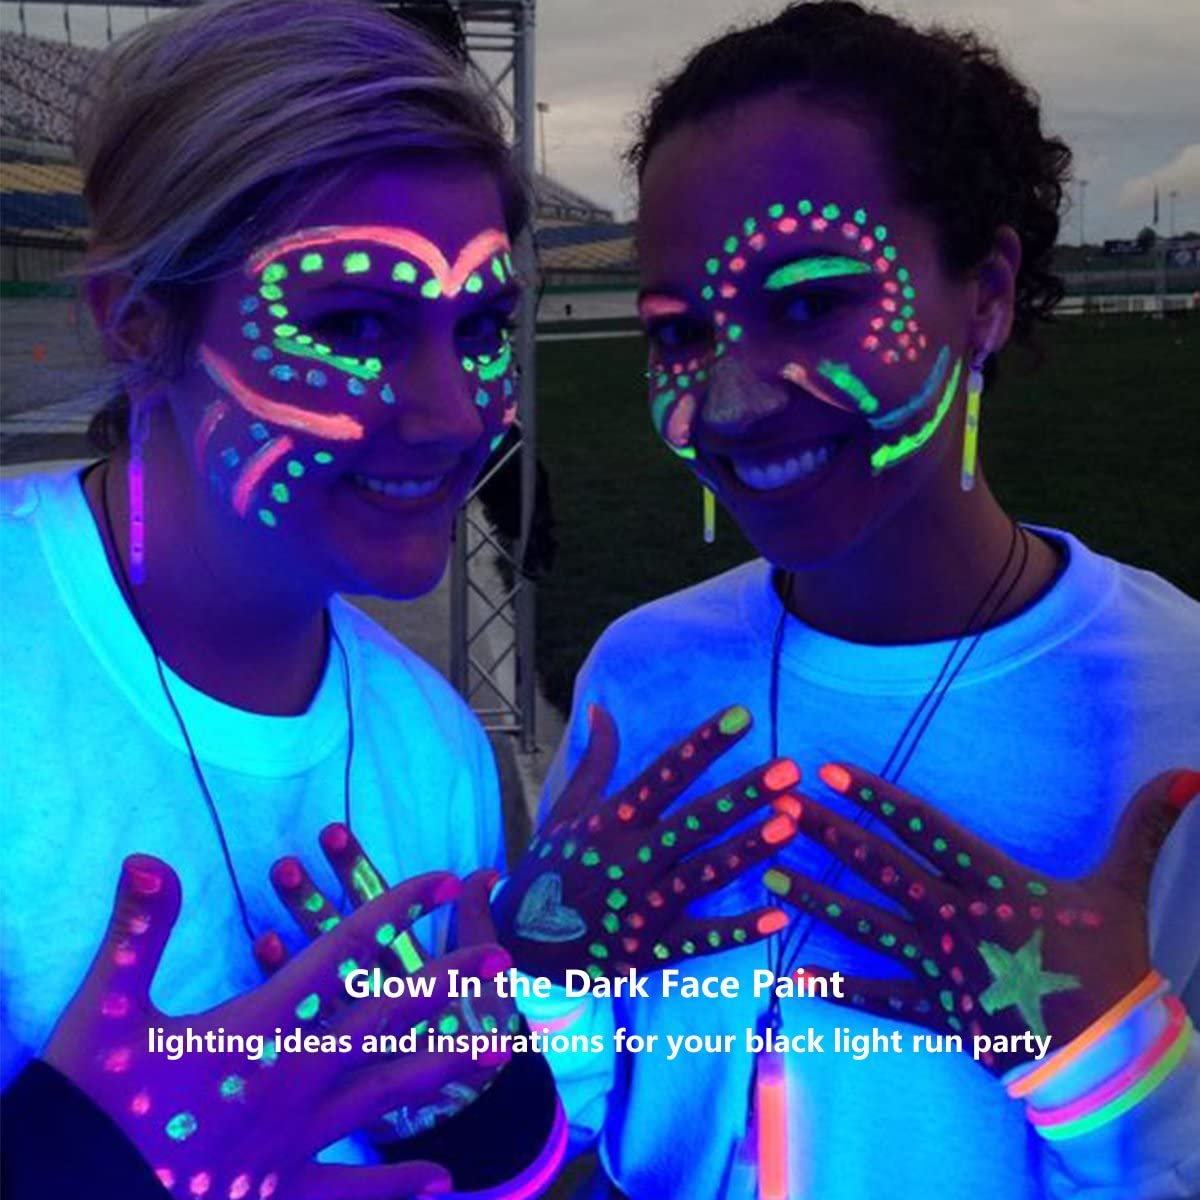 Uv Blacklight Face Paint Escolite Face And Body Paint For Run Party Neon Fluorescent Safe Non Toxic 0 68oz 20ml Set Of 6 Tubes Rgbopy Amazon Ca Home Kitchen